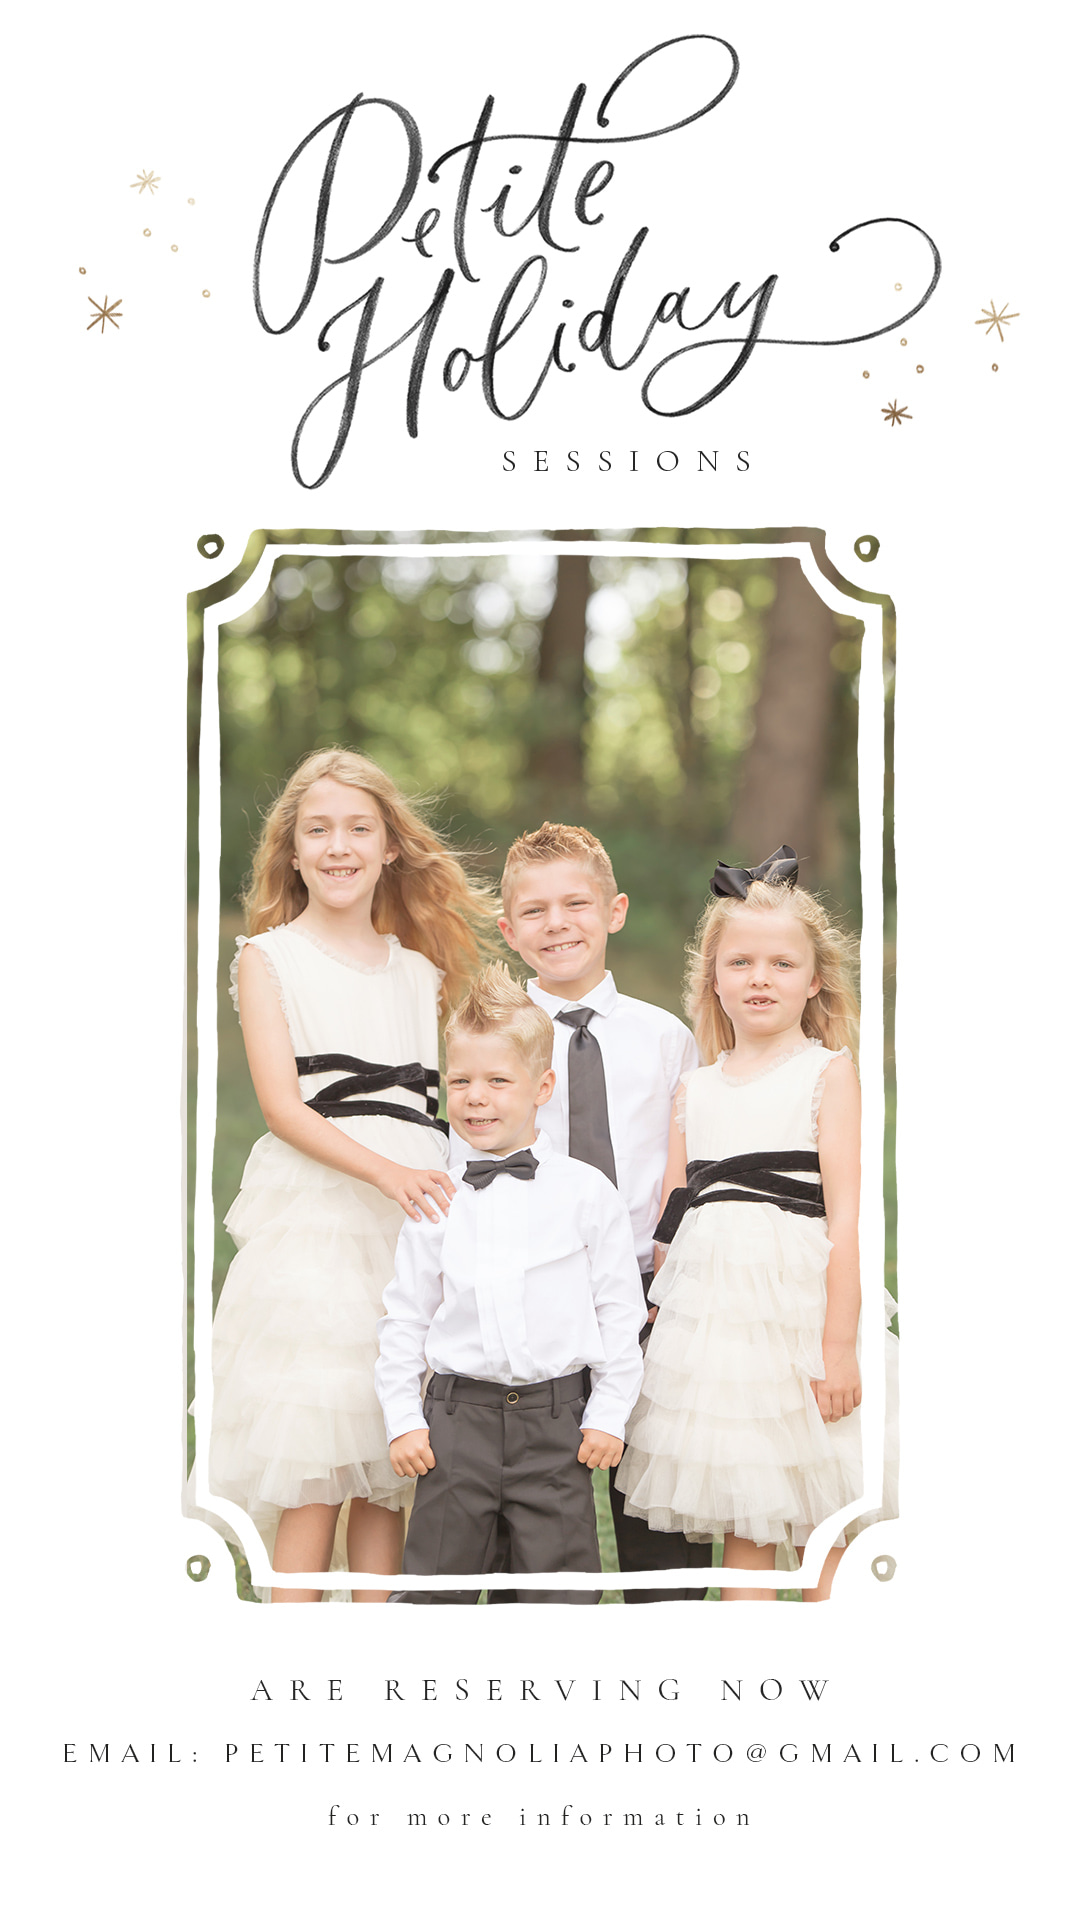 Petite Holiday Sessions